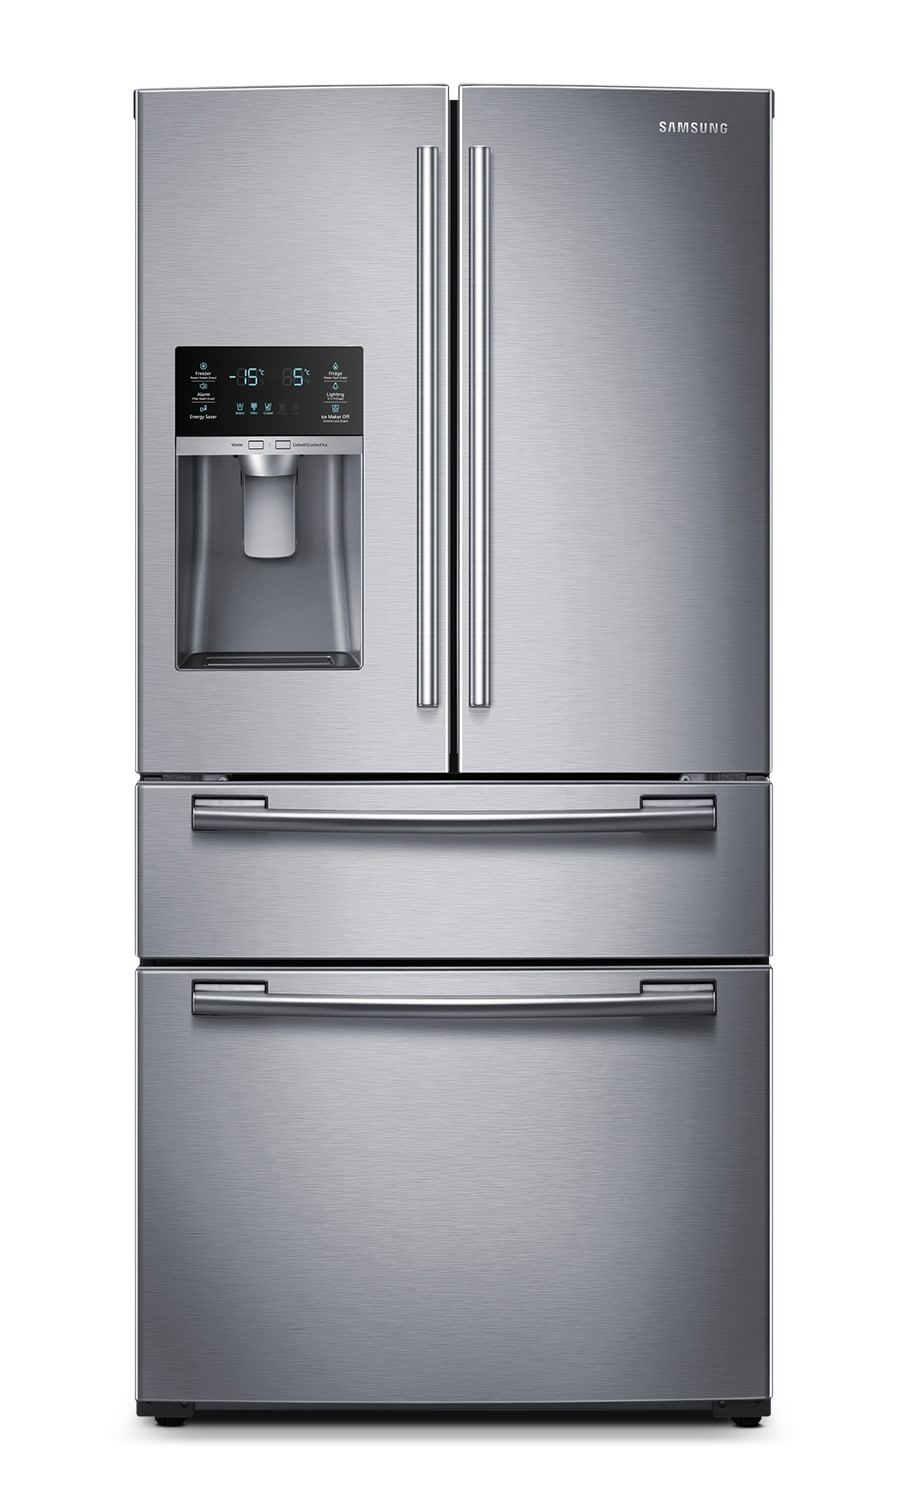 Refrigerators and Freezers - Samsung Stainless Steel French Door Refrigerator (25 Cu. Ft.) - RF25HMEDBSR/AA